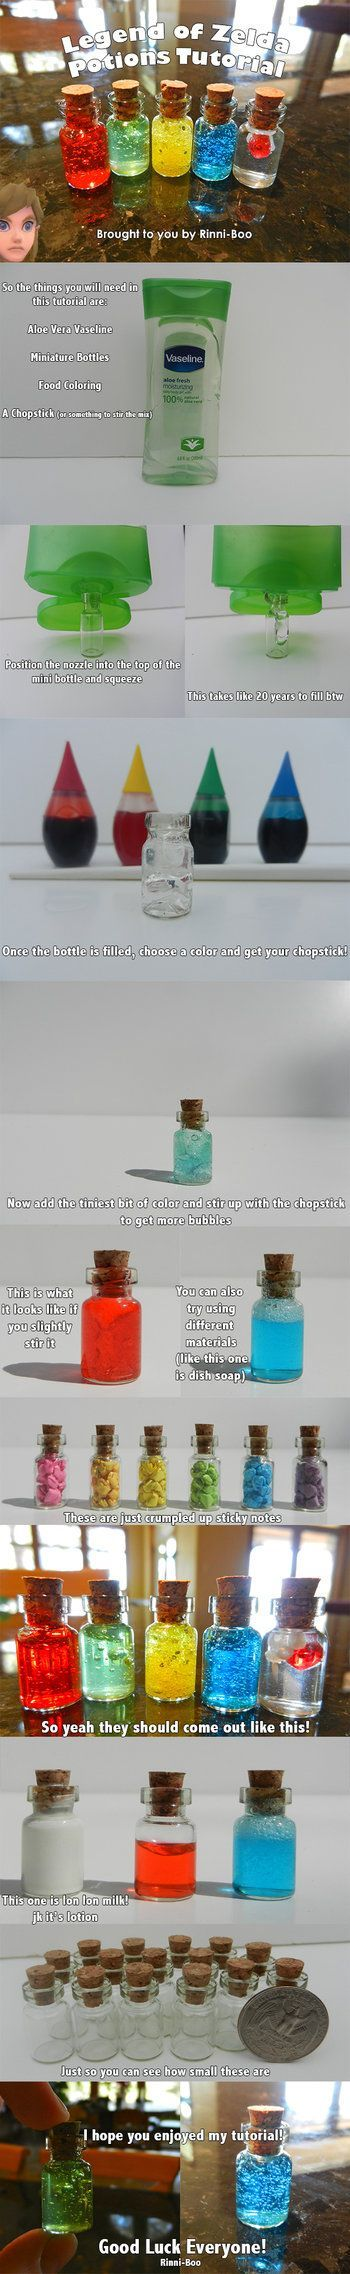 DIY Legend of Zelda Potions Tutoral by Rinni-Boo: